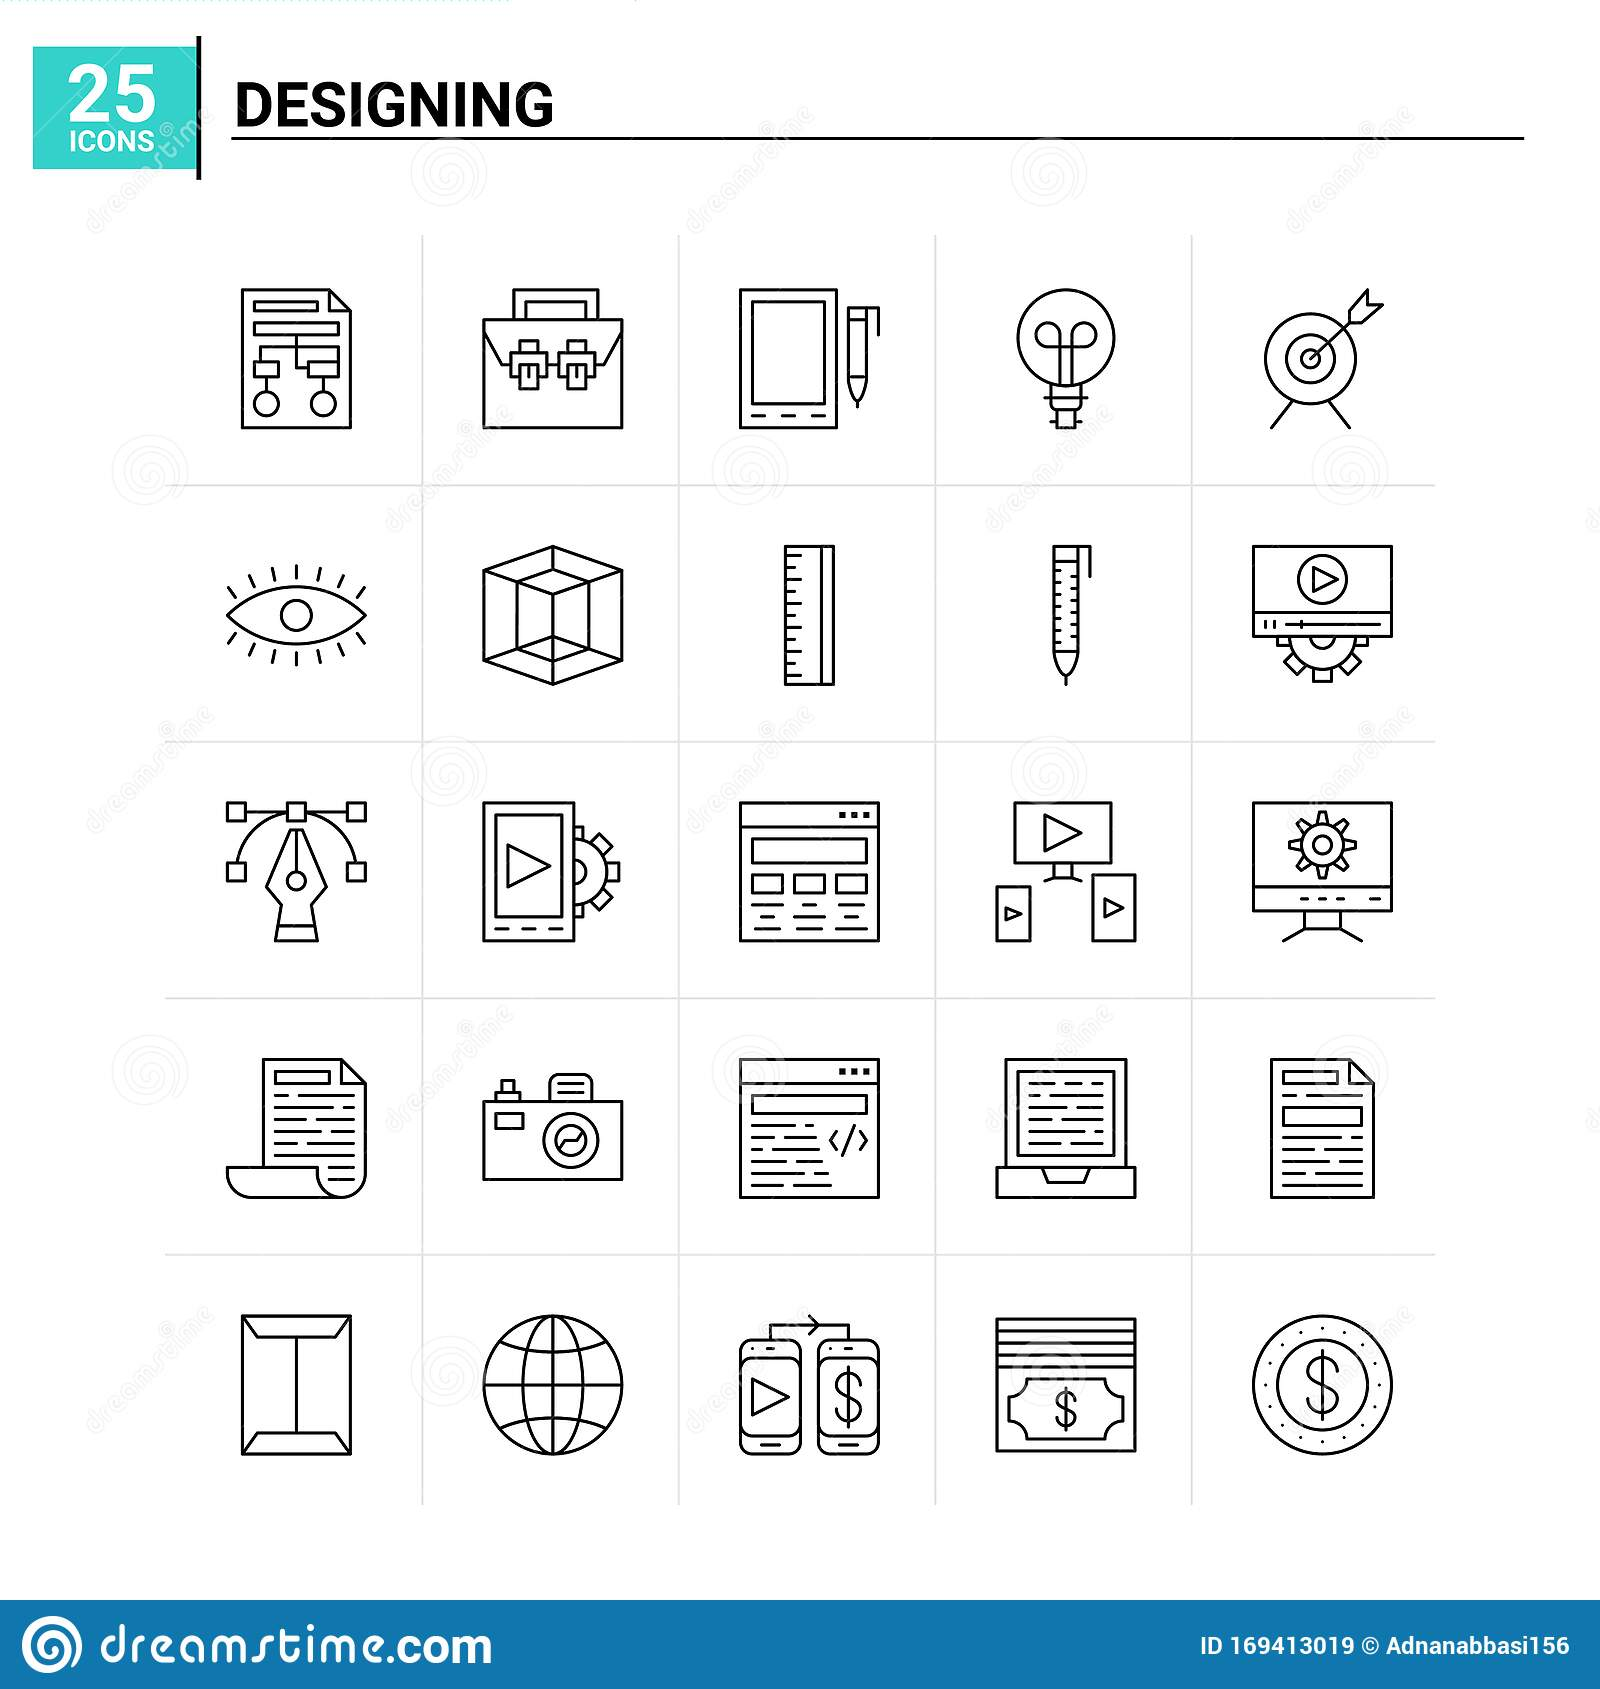 25 Designing Icon Set Vector Background Stock Vector Illustration Of Internet Abstract 169413019